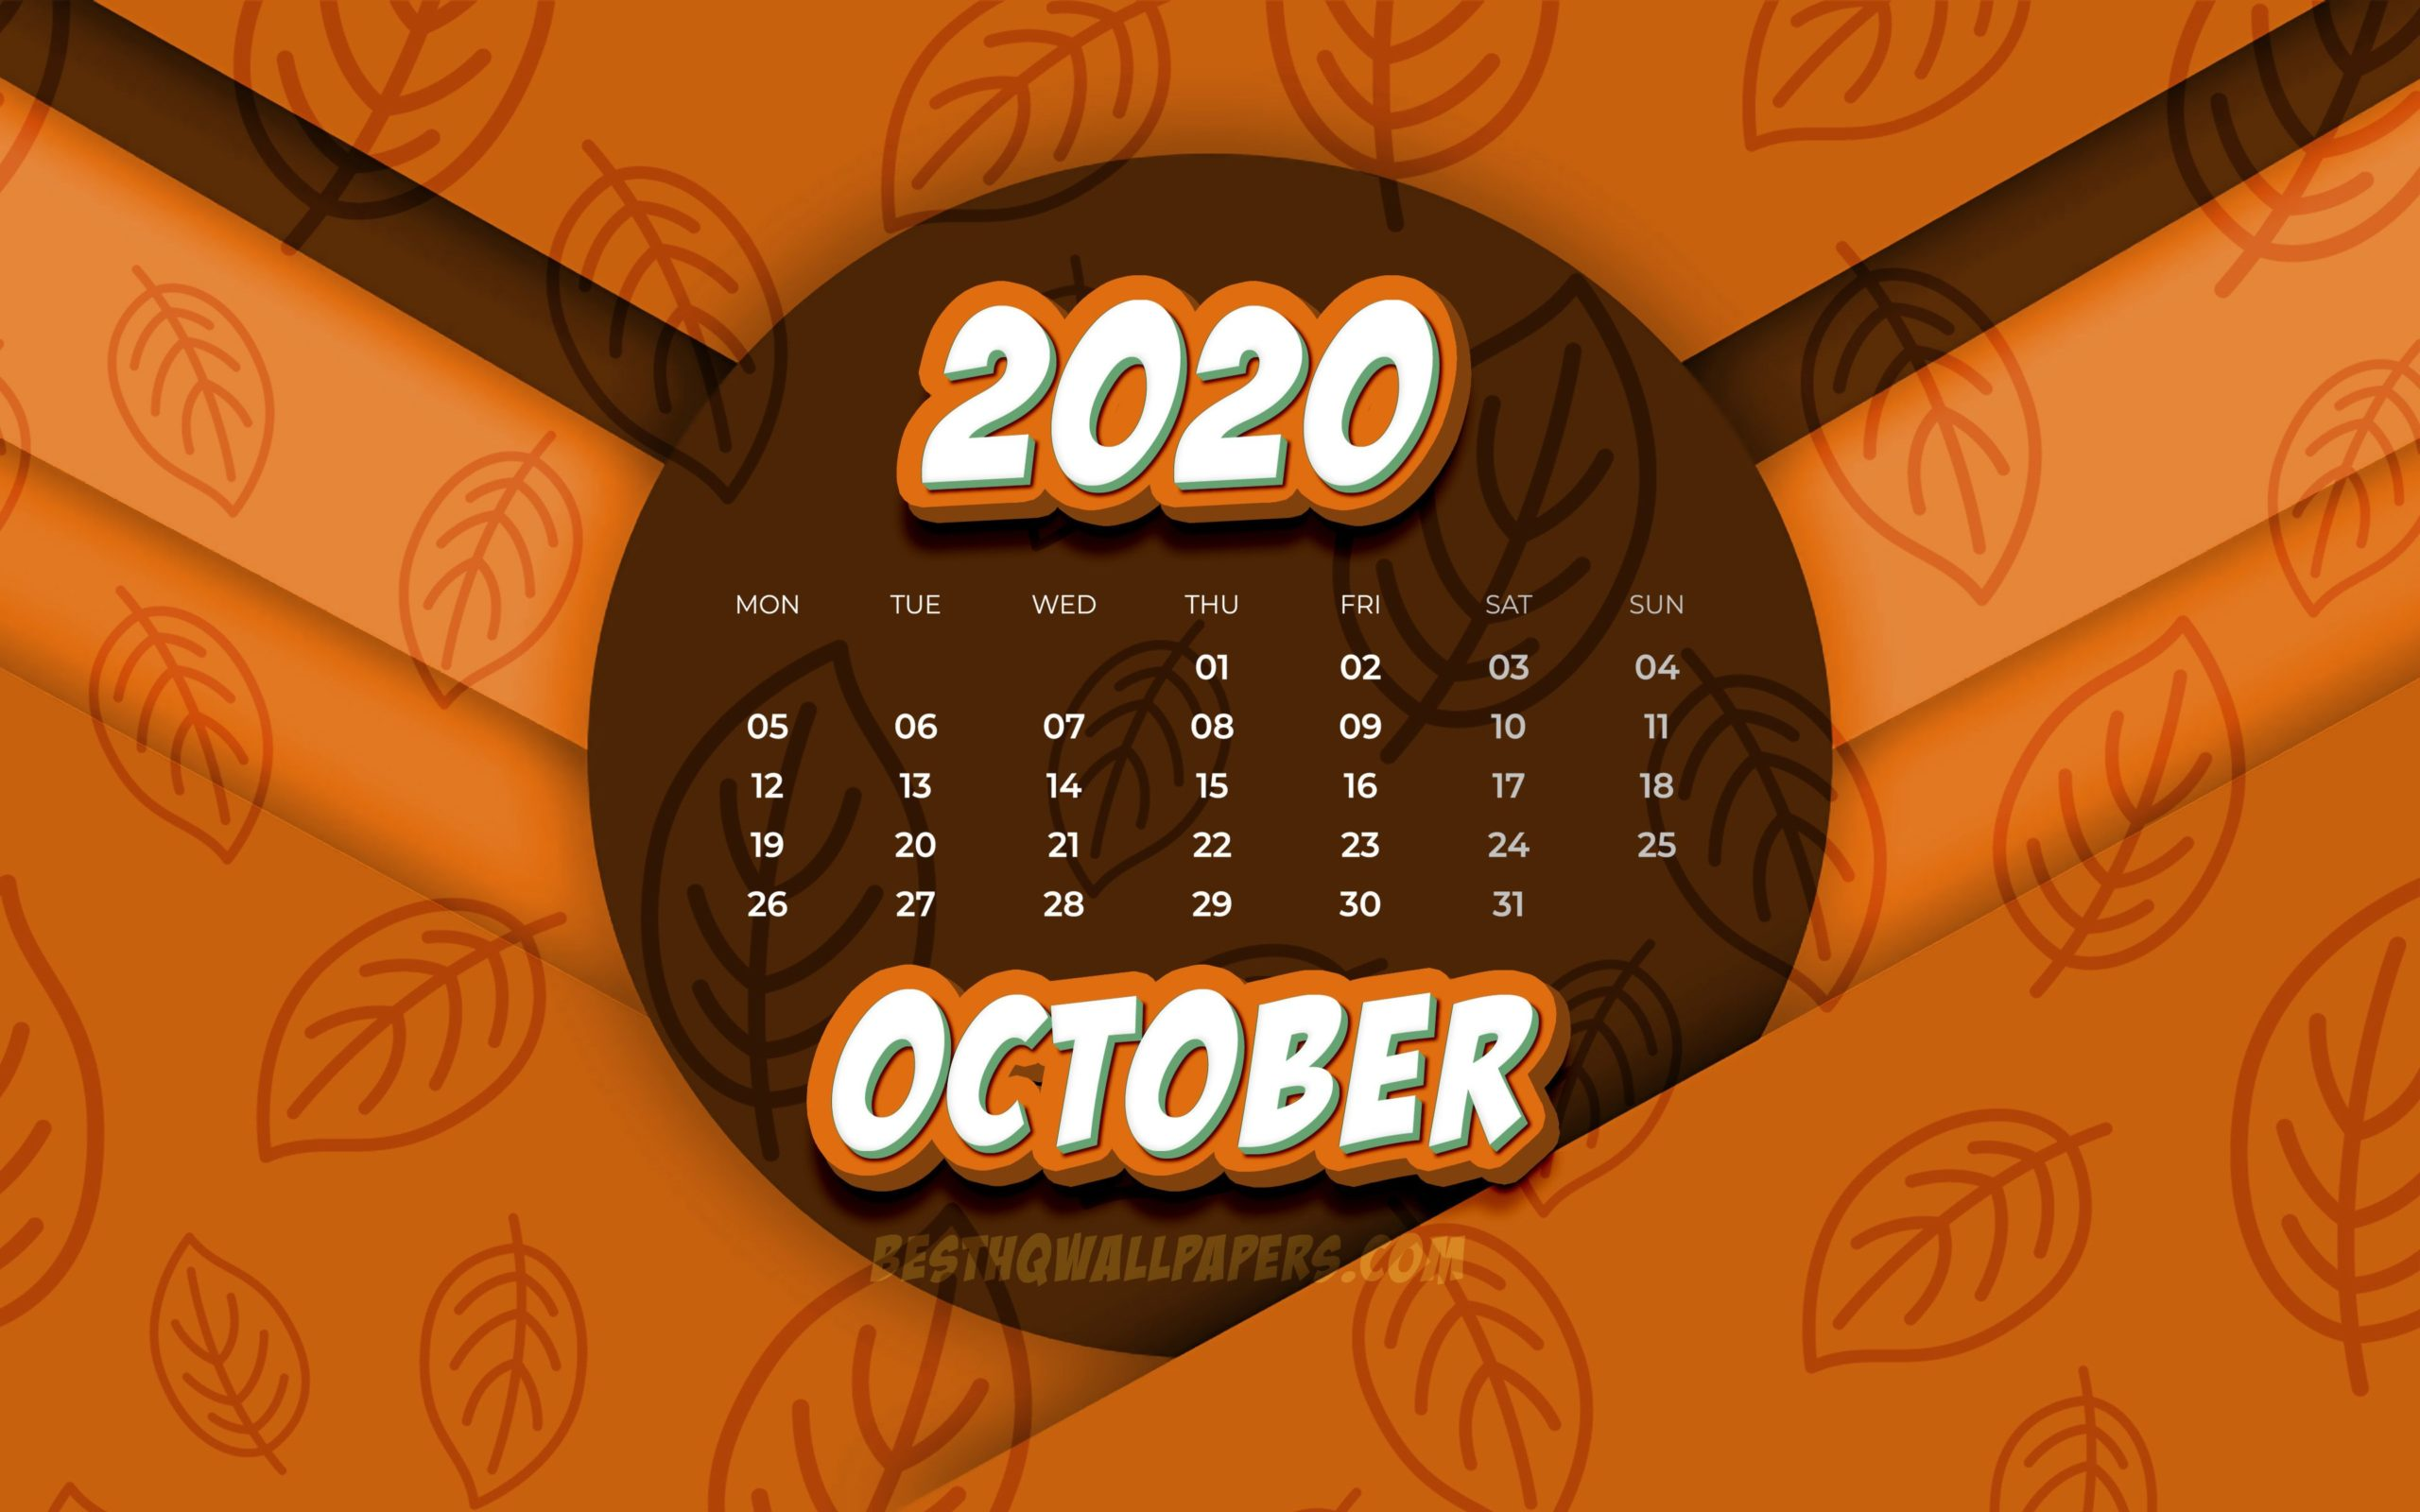 october wallpaper calendar